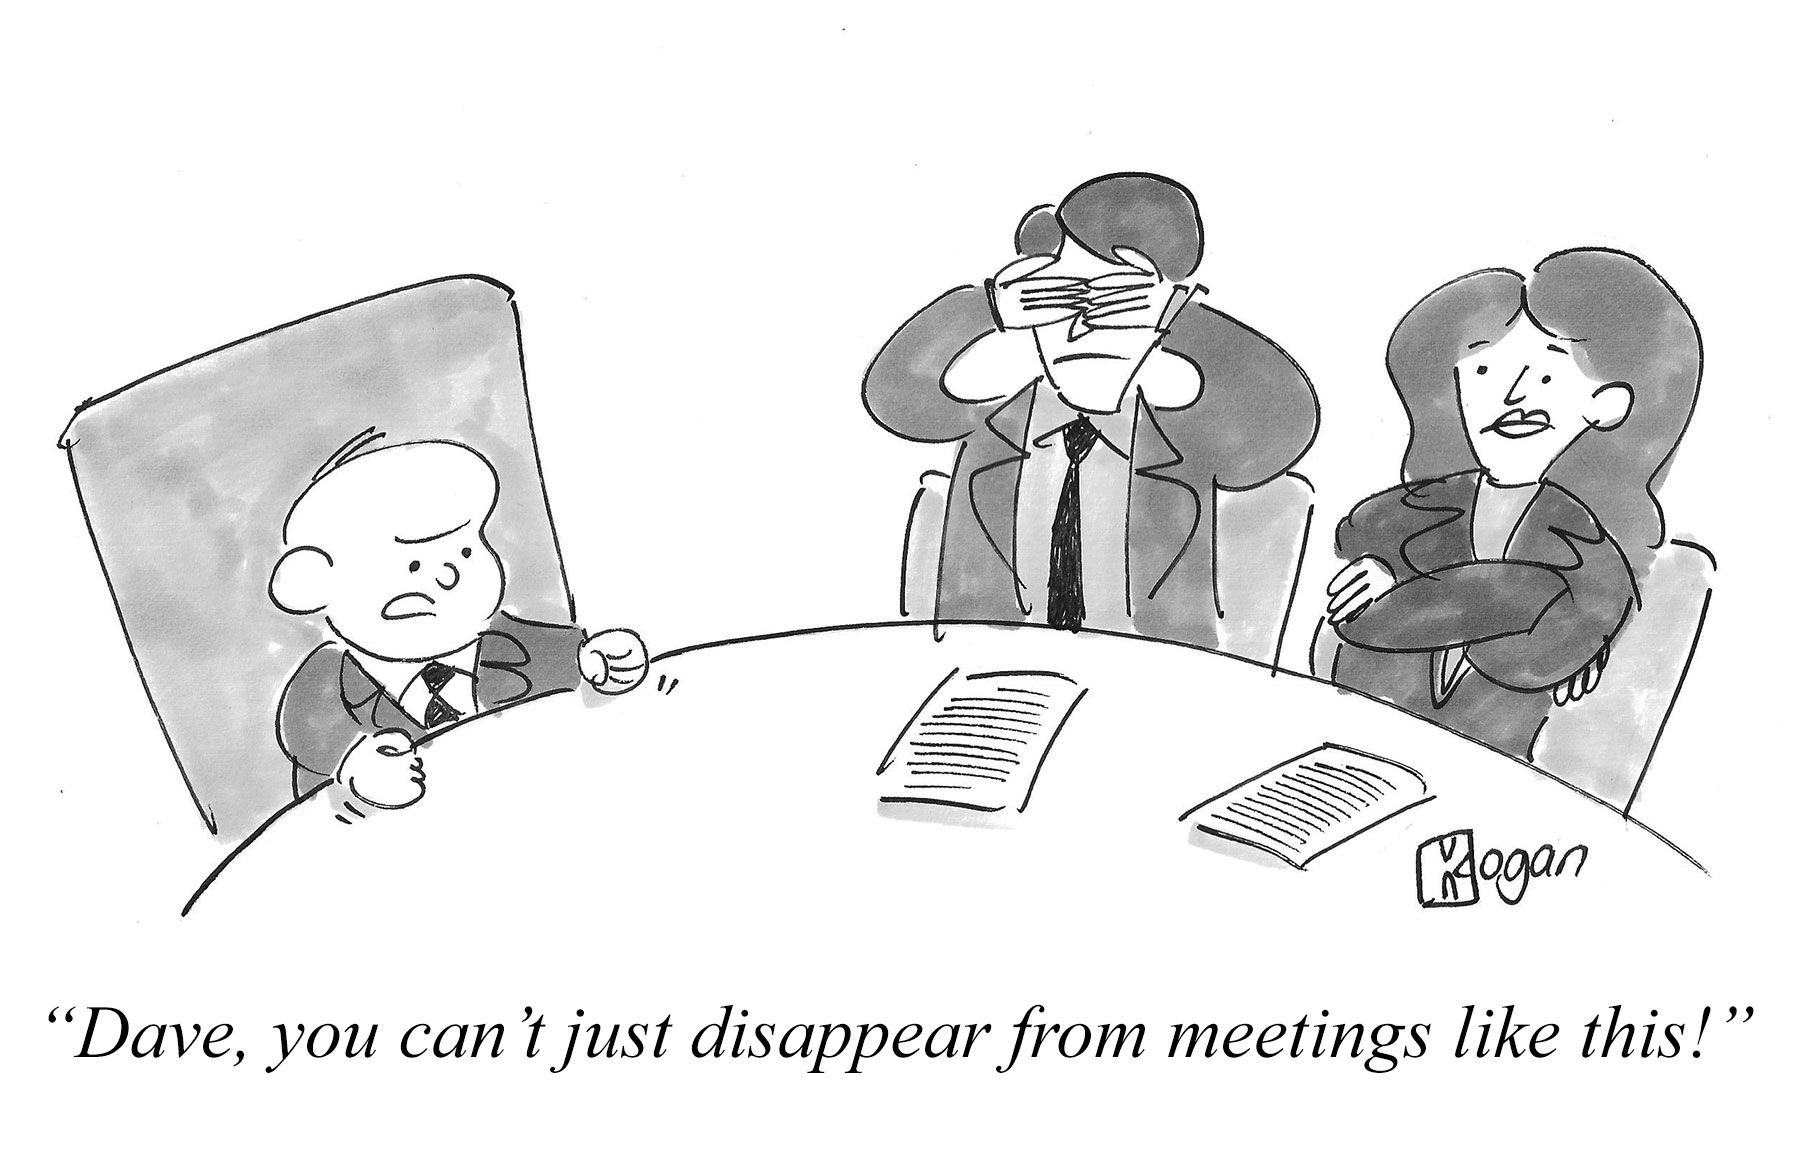 Dave, you can't just disappear from meetings like this!